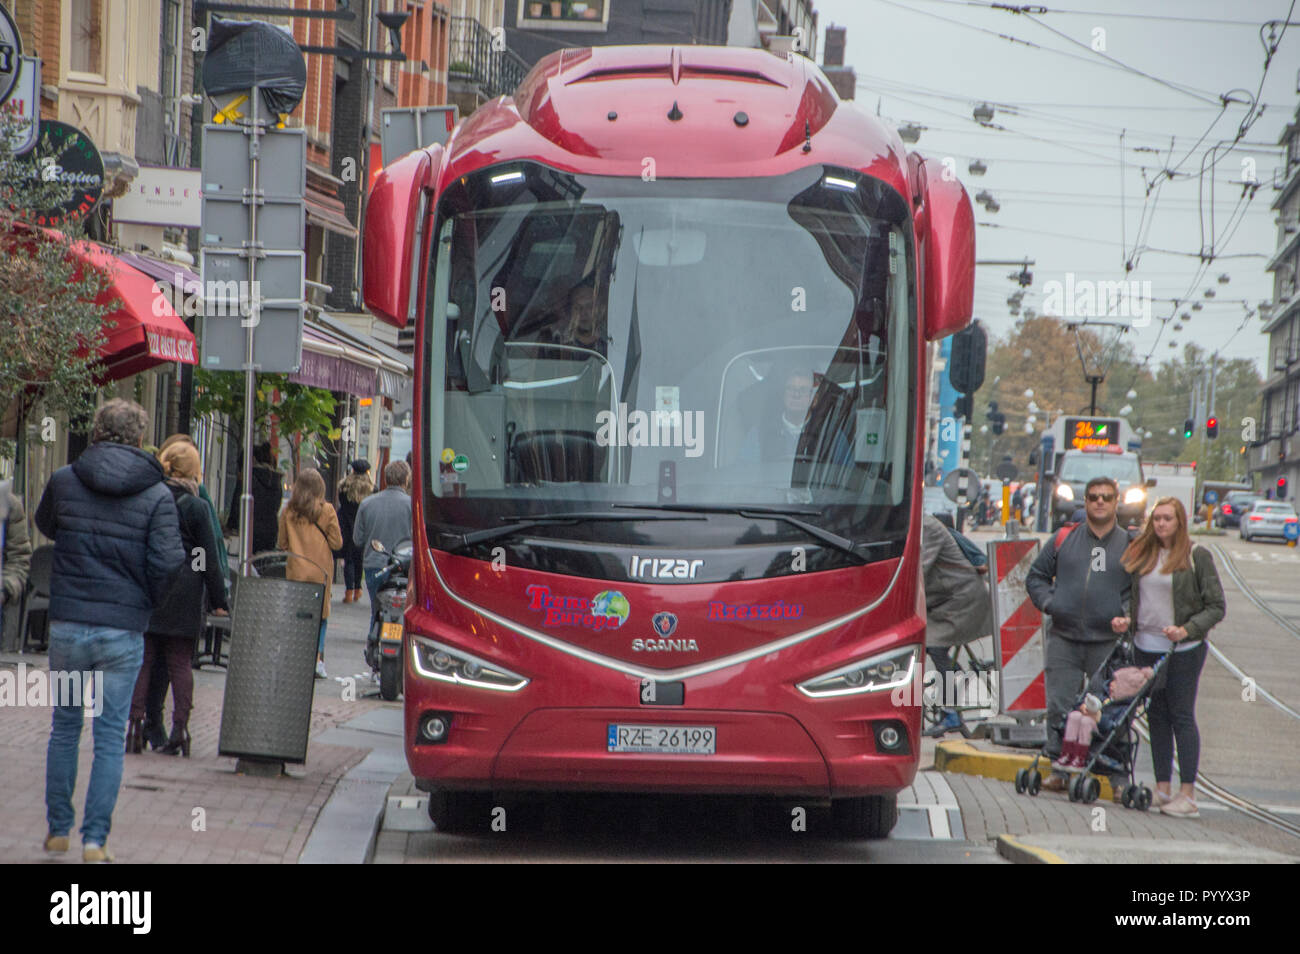 Bus From The WWW.Trans-Europa.Pl Company At Amsterdam The Netherlands 2018 - Stock Image